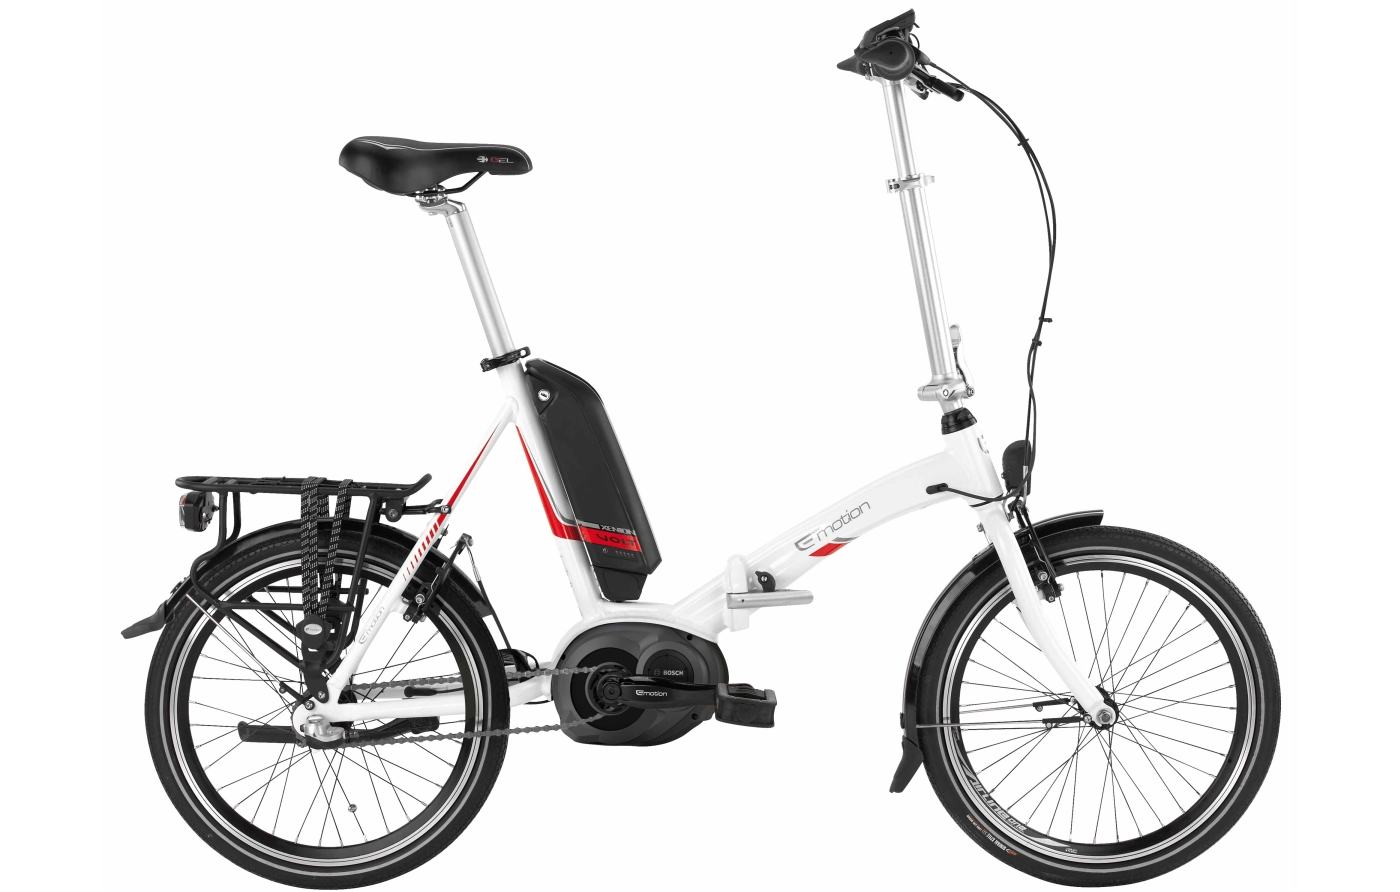 Xenion Volt Folding Electric Bike With Bosch Motor From Bh